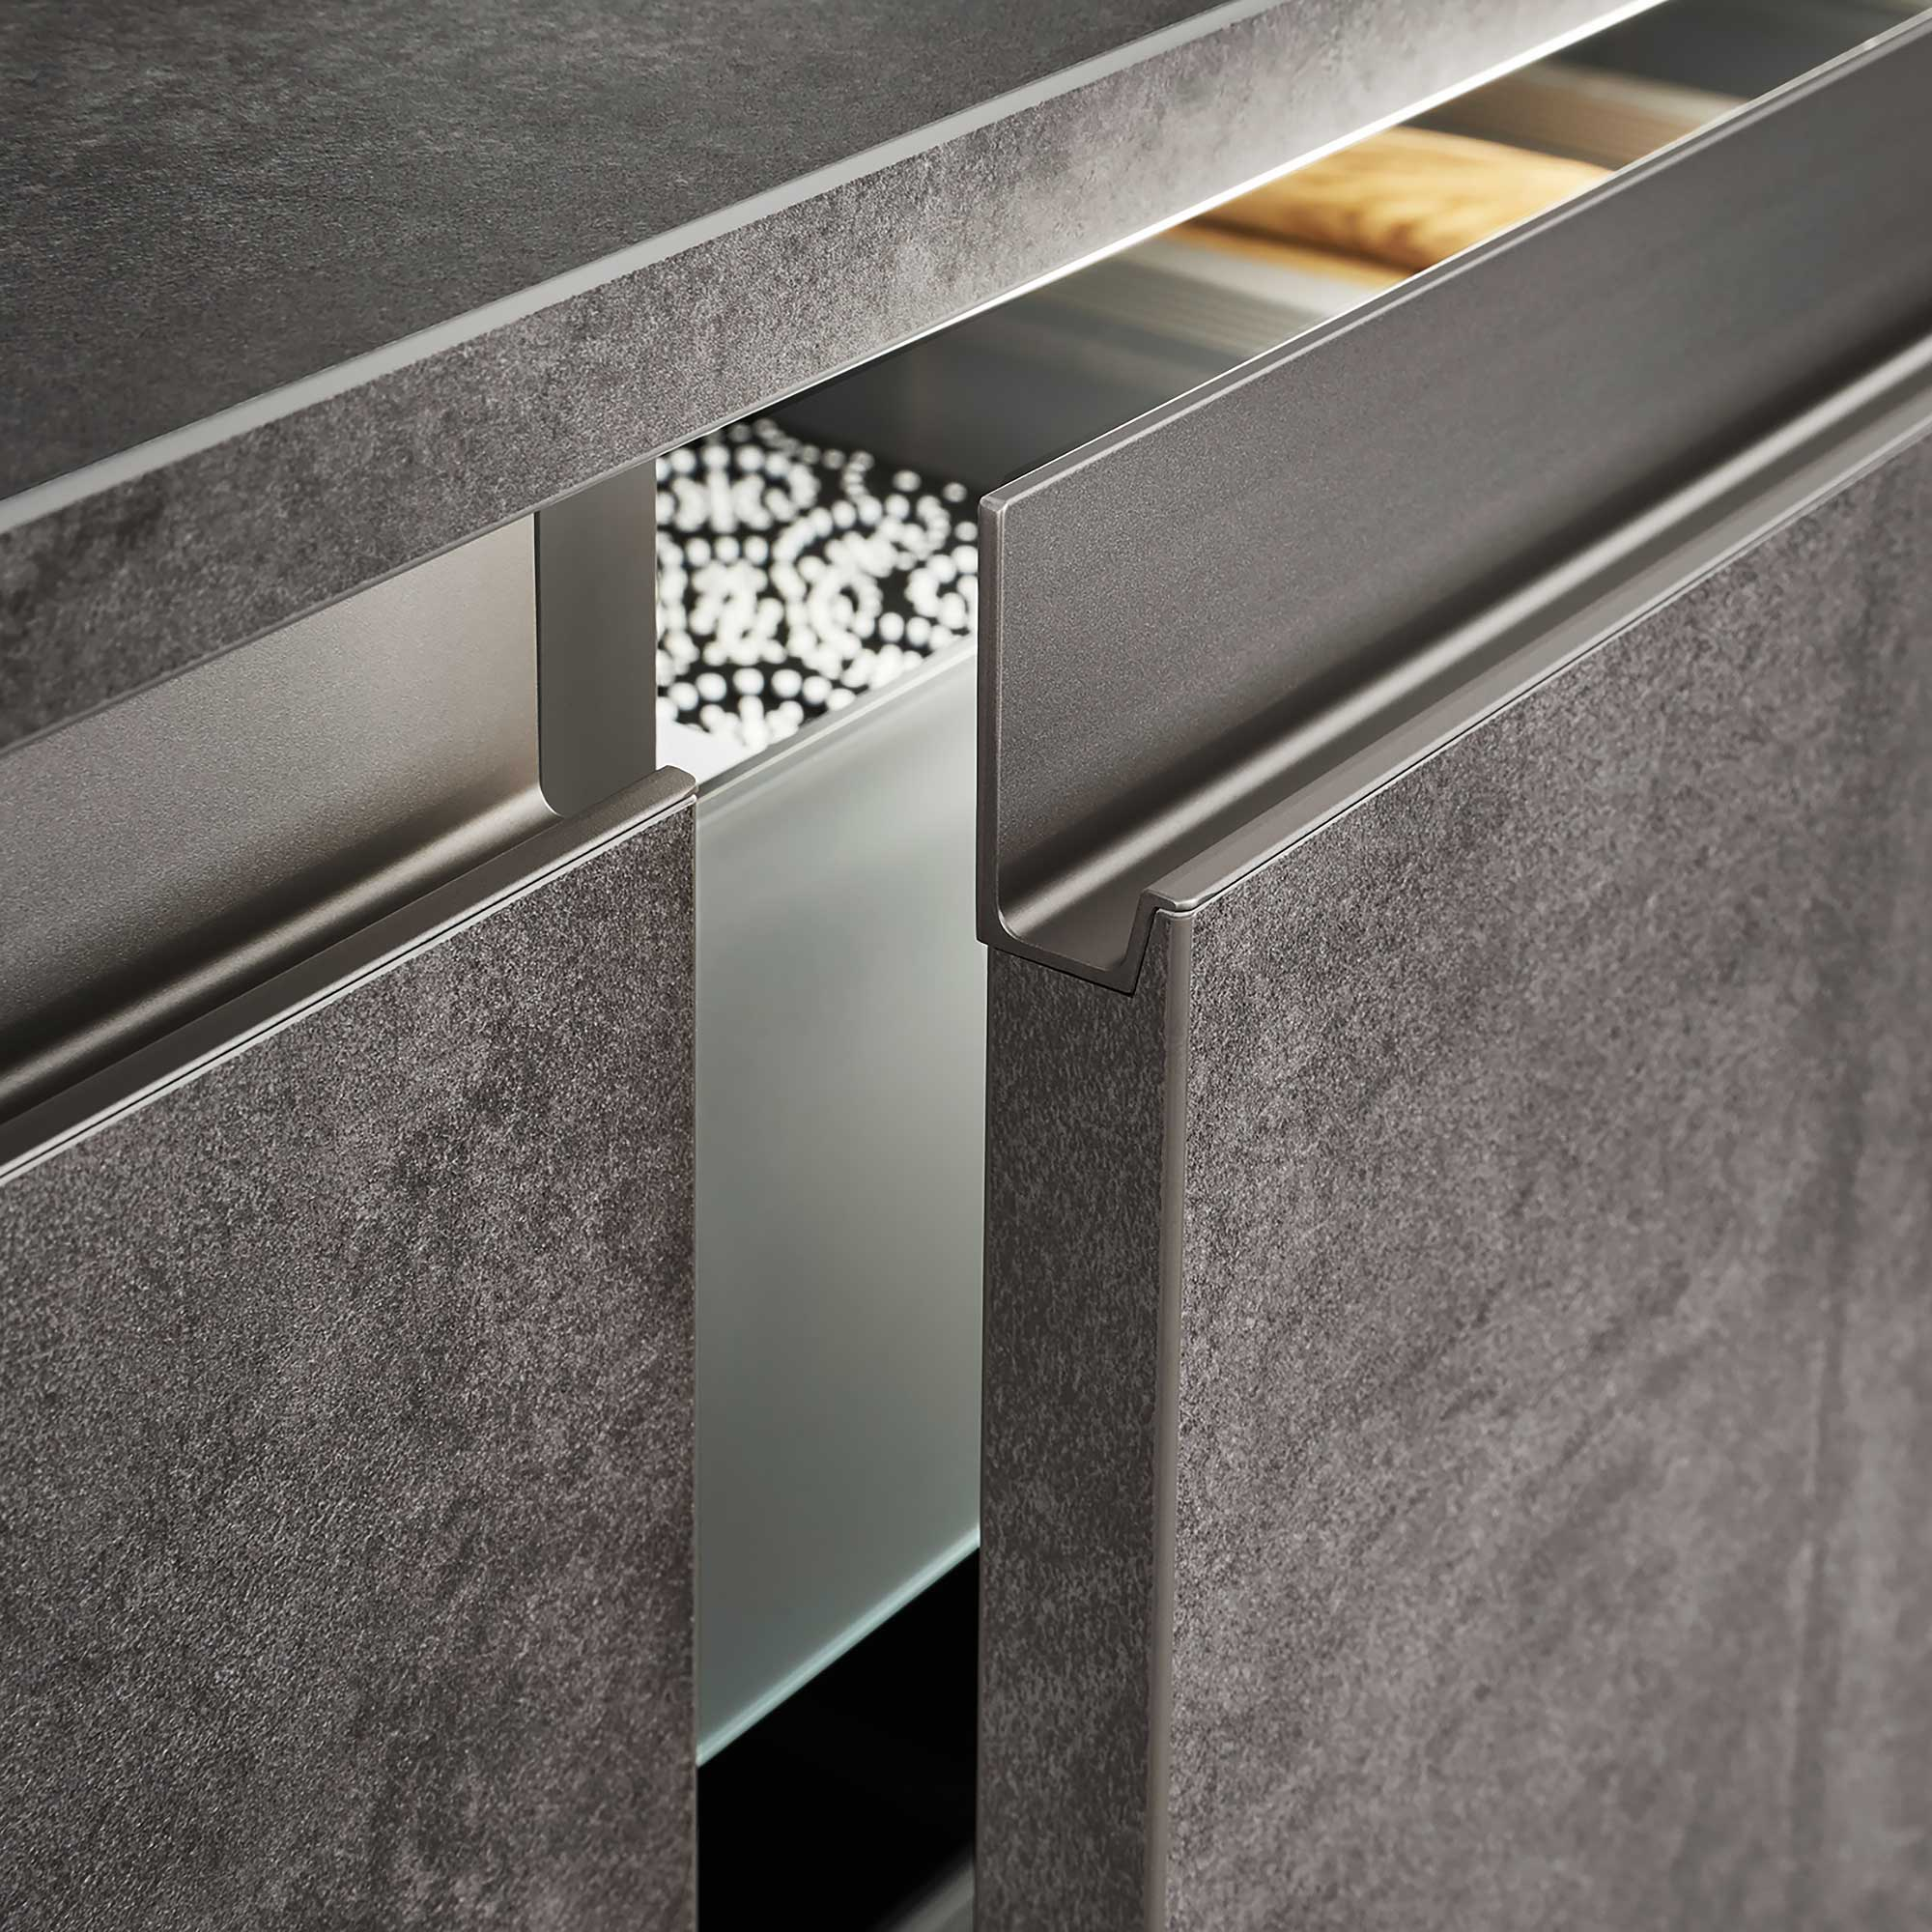 Profile griprail designer kitchen cupboard handle by Hubble